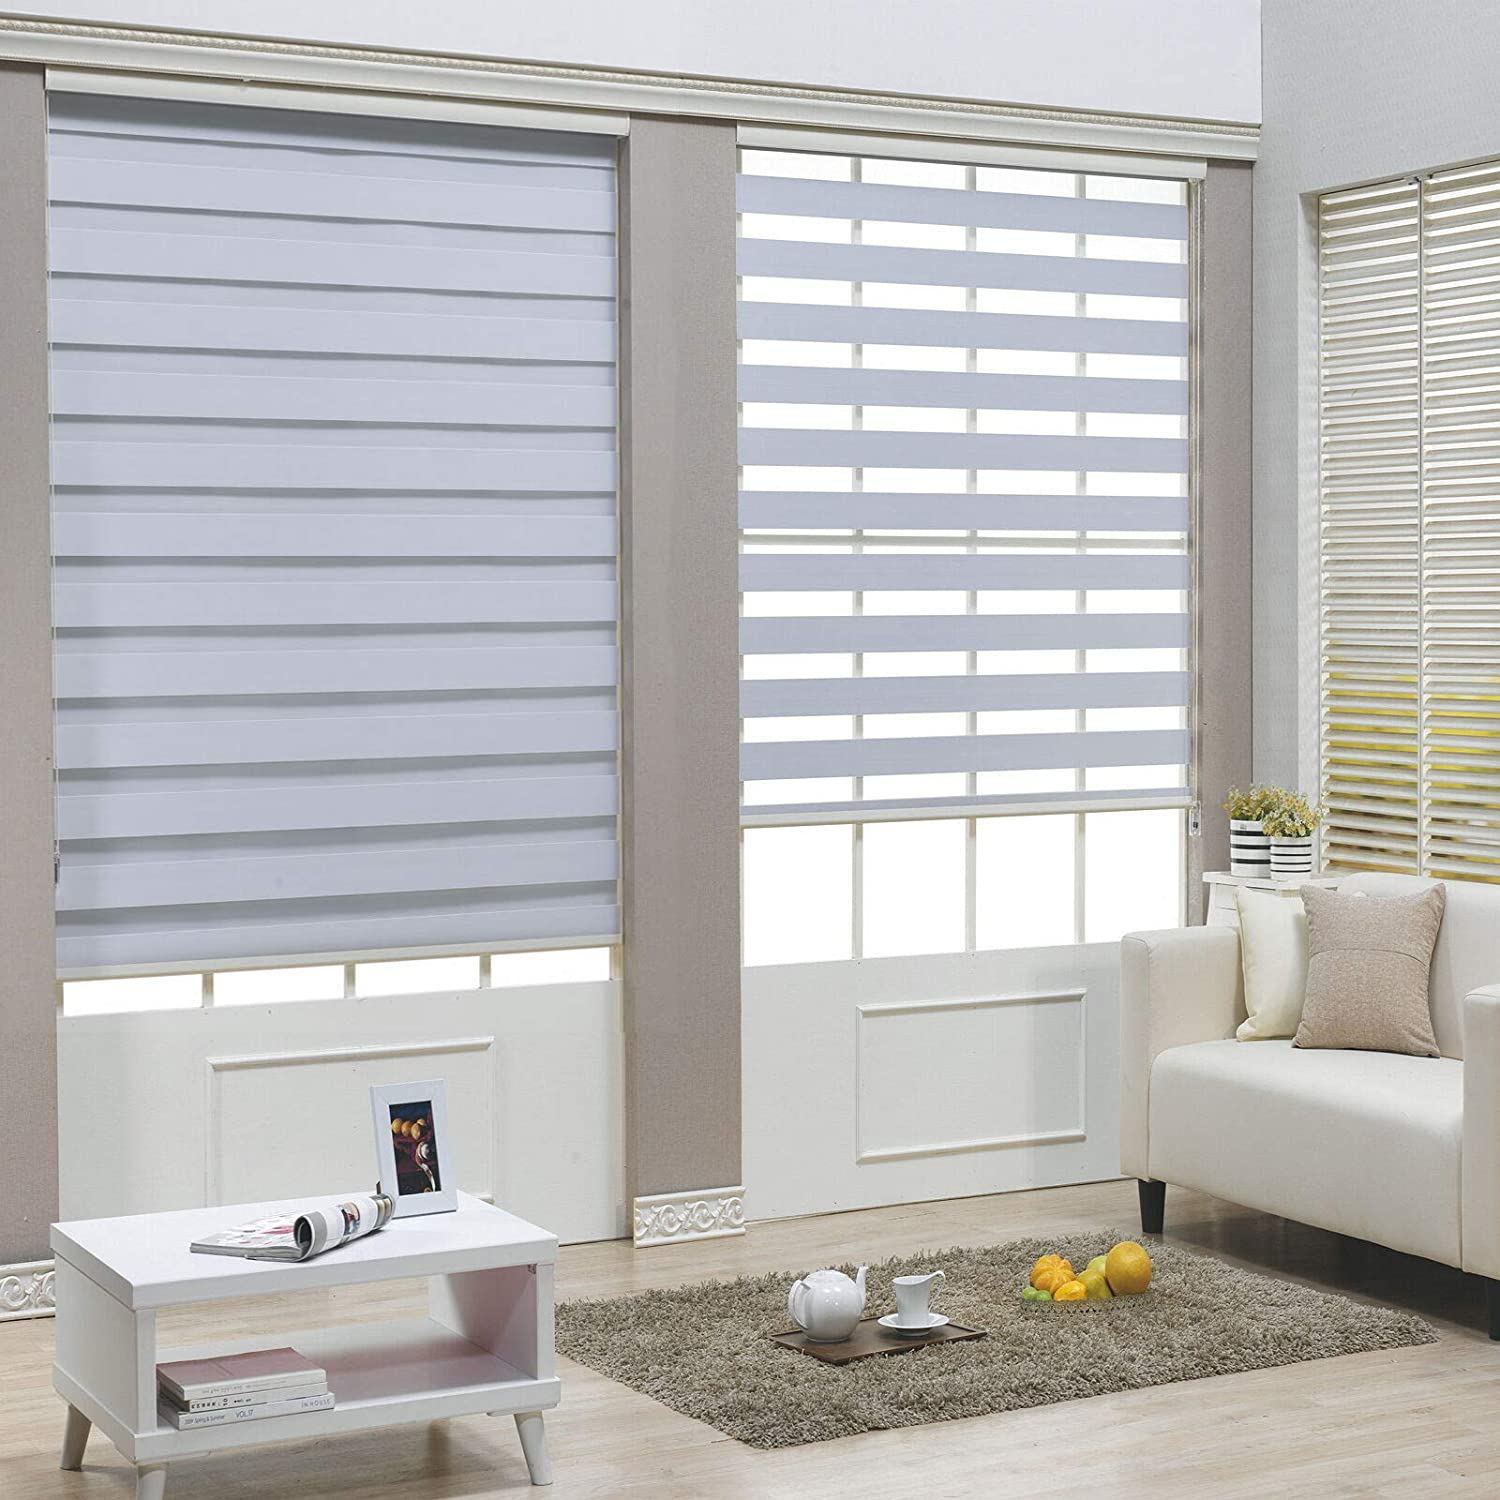 """XKMT- Zebra 2021 spring and summer new Dual Horizontal Online limited product Window Blinds W Shades Roller 67"""""""